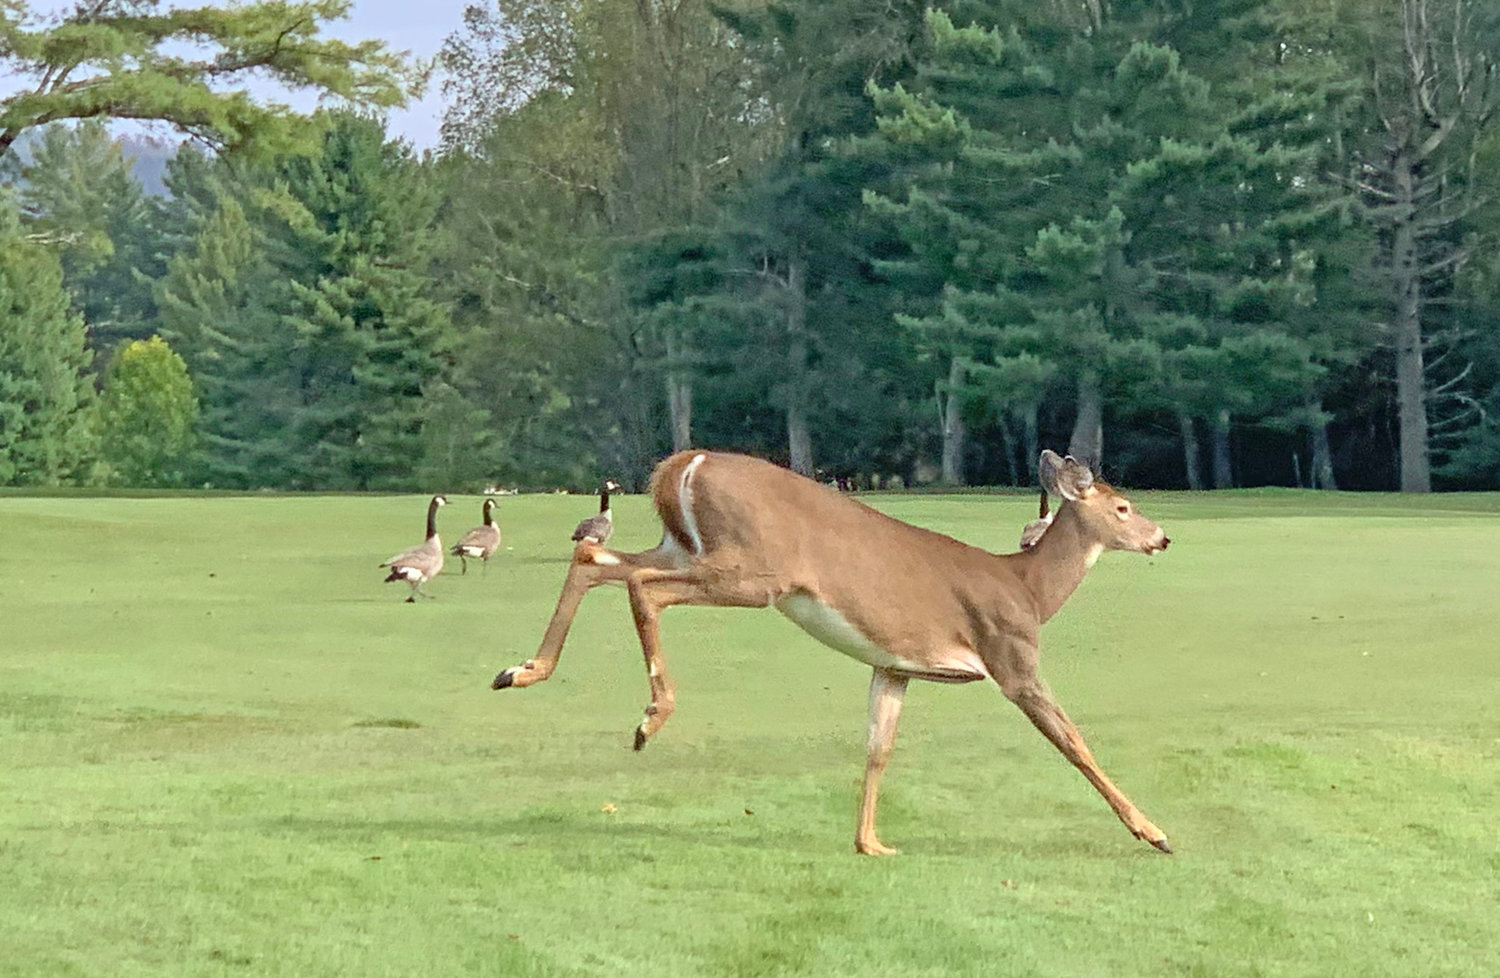 ON THE RUN — A deer crosses the eighth fairway at Thendara Golf Club on Thursday afternoon with some geese in the background.